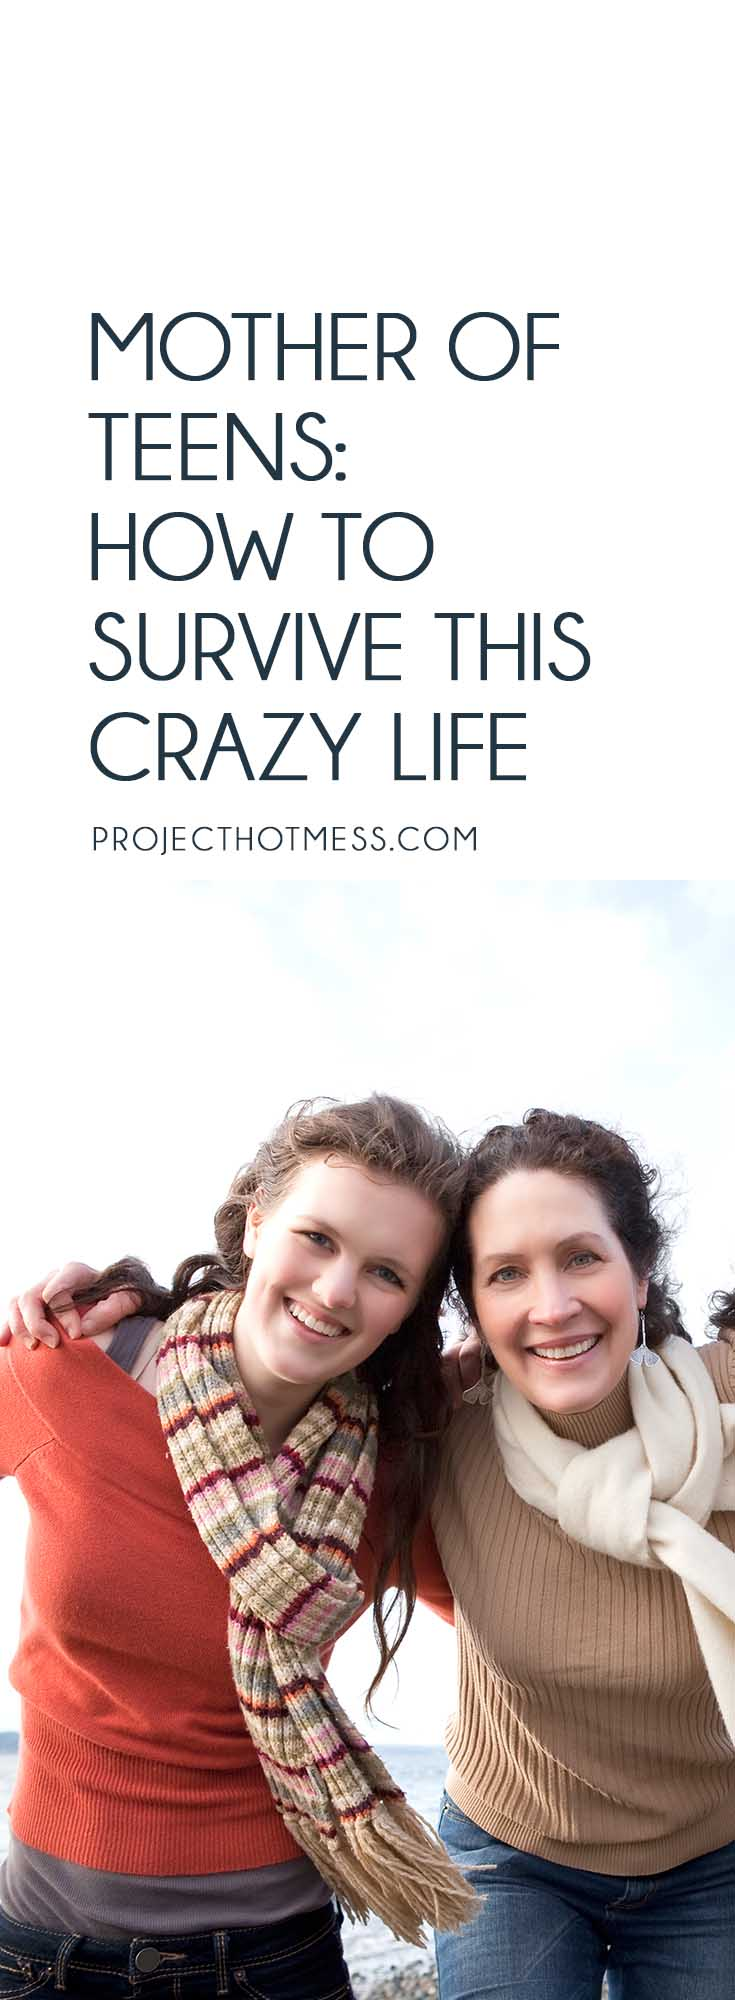 Teenagers are a whole new game as a parent, but there is a way you can survive the crazy life of being a mother of teens, without going completely bonkers. Parenting | Parenting Advice | Mom Life | Parenting Goals | Parenting Ideas | Parenting Tips | Parenting Types | Parenting Hacks | Positive Parenting | Parenthood | Motherhood | Surviving Motherhood | Teenagers | Teen Parenting | Parenting Teenagers